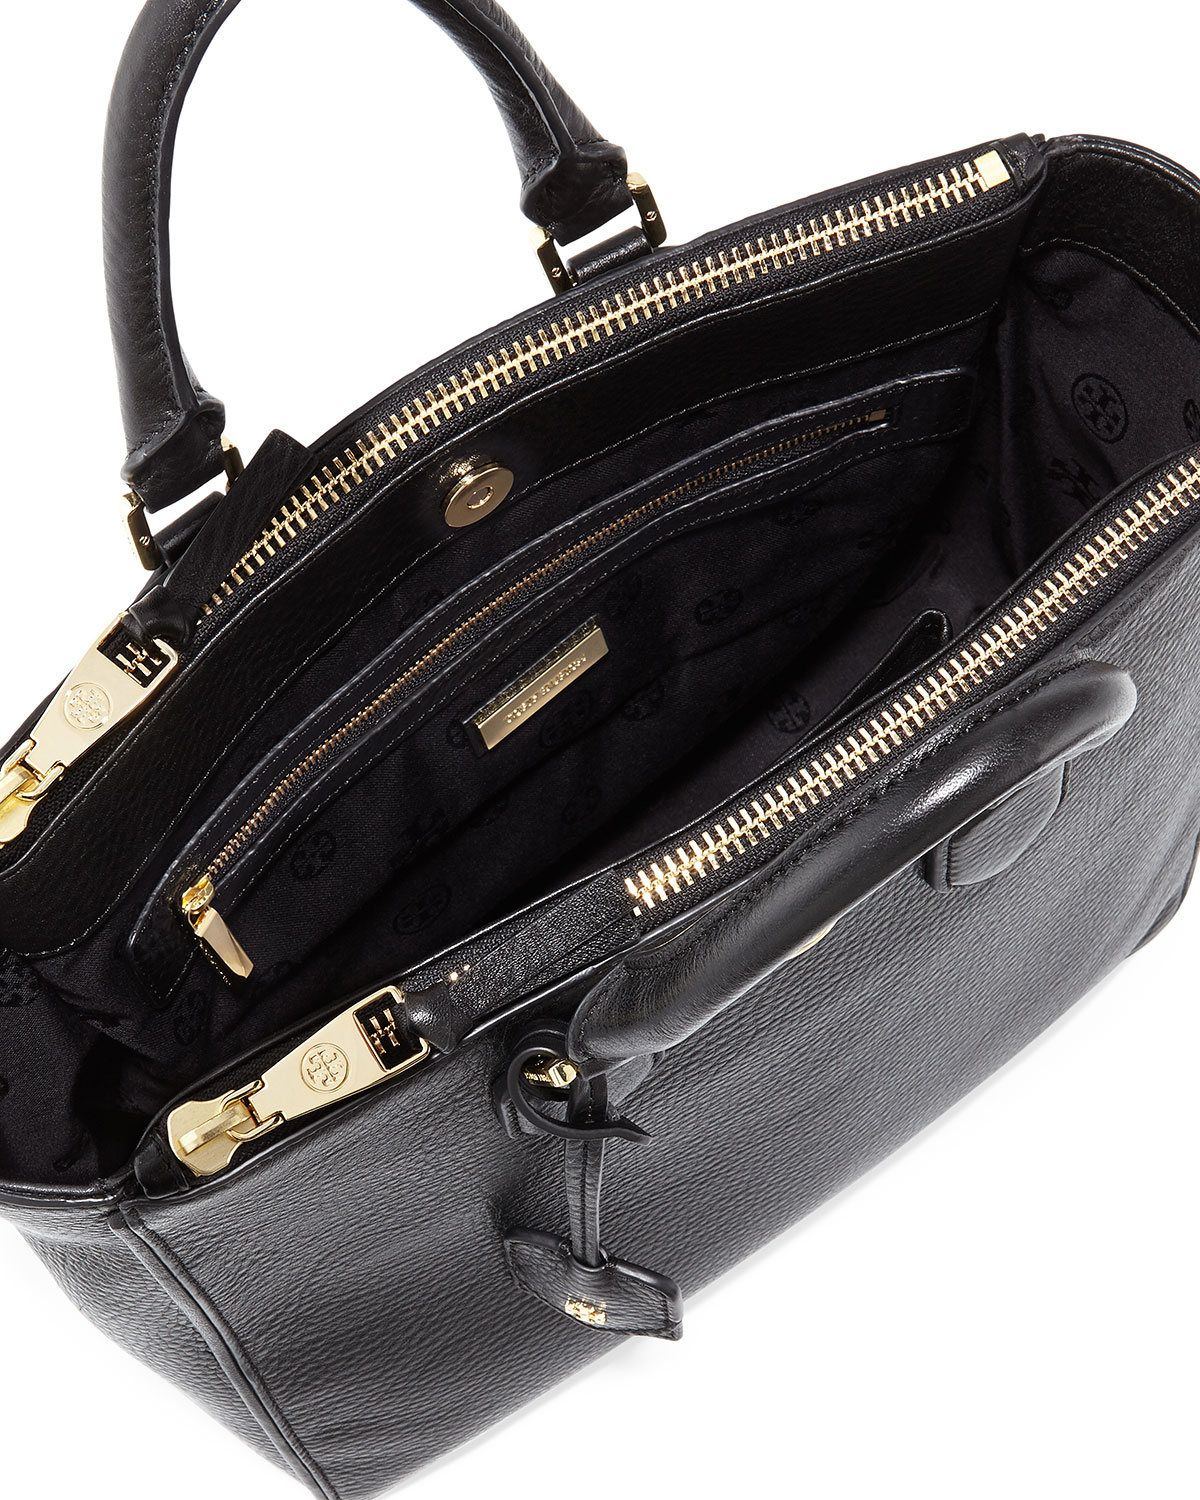 Snap Lyst Tory Burch Robinson Mini Square Tote In Black Photos On Ronbinson Pebbled